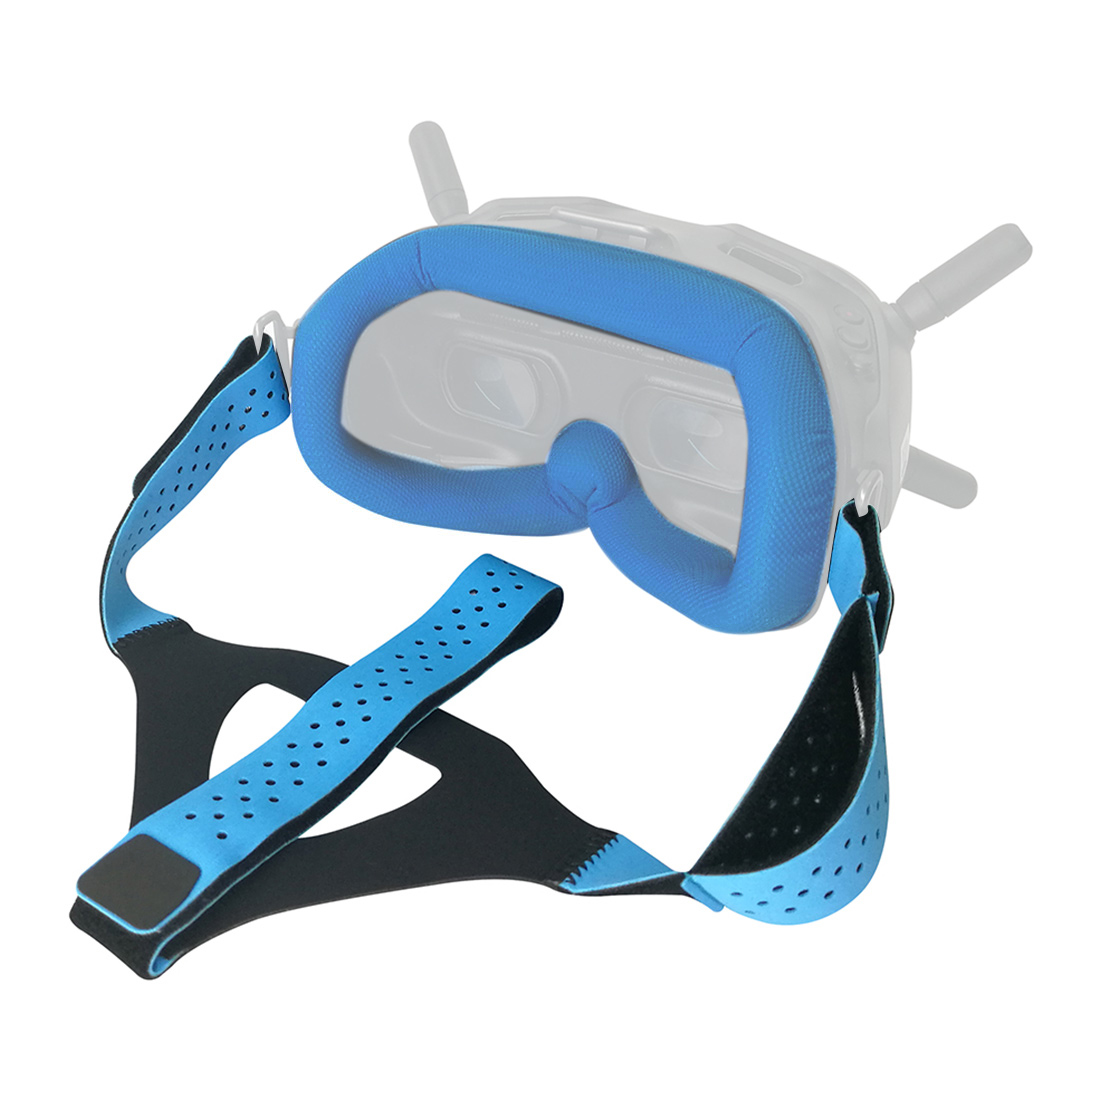 Hot Sale WLYL Faceplate Head Strap for FPV Google Face Plate Head Band Eye Pad Skin-friendly Fabric Replacement RC Drone Parts